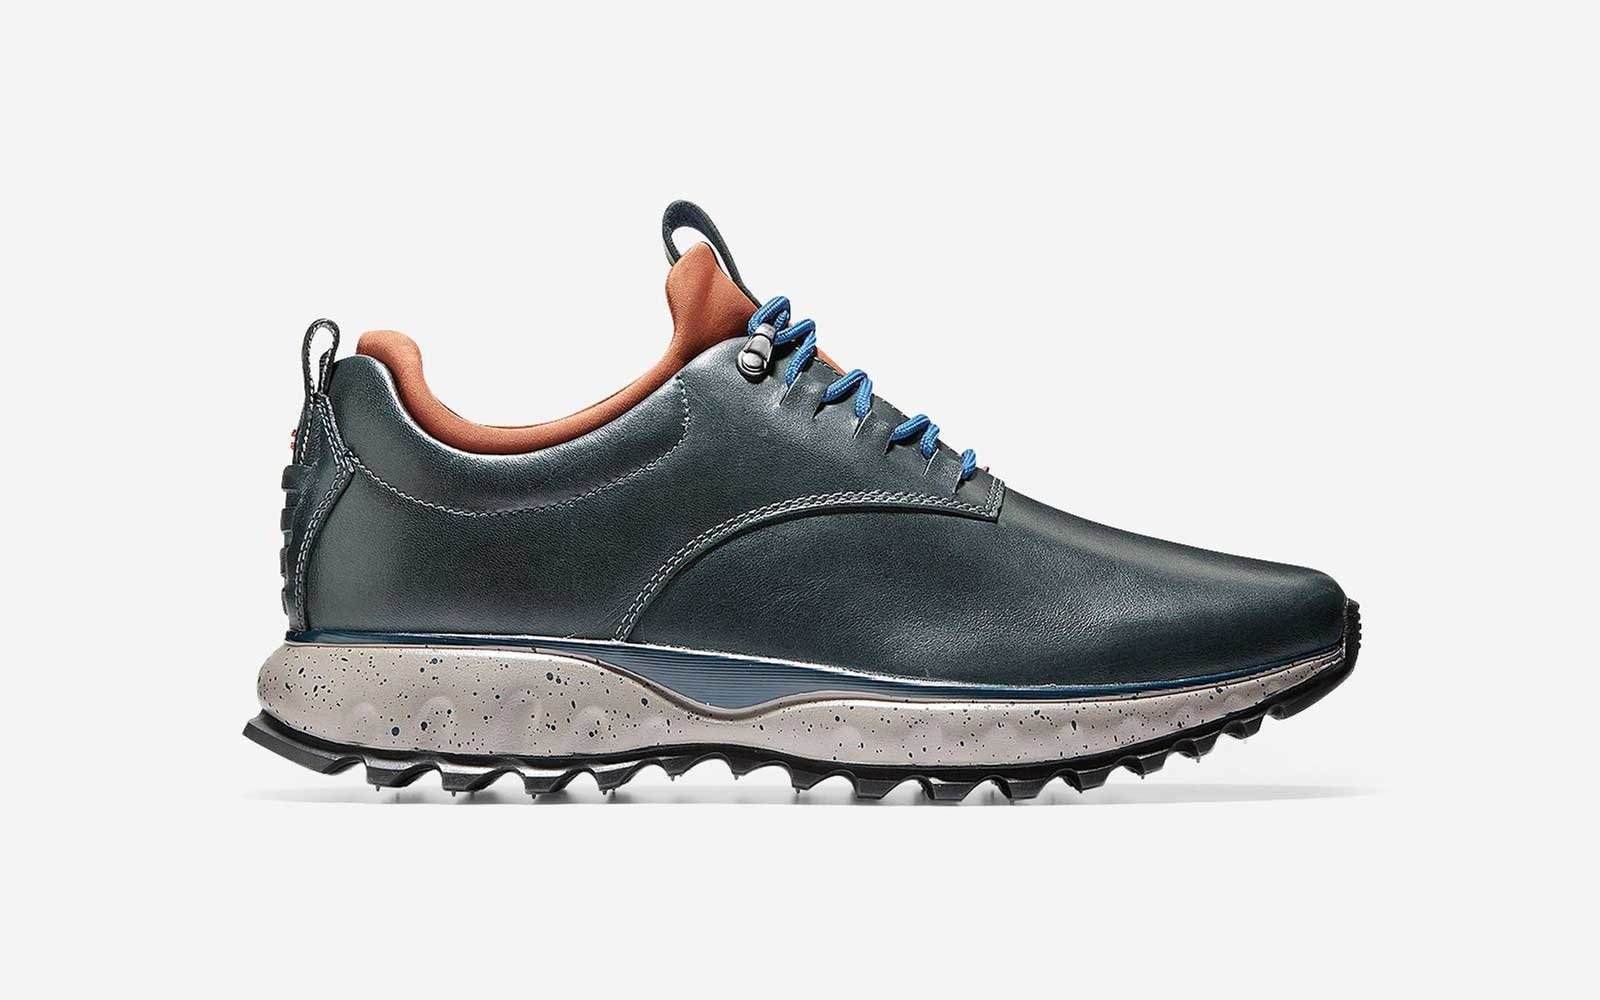 12a68ff96a67 Cole Haan Men s Zerogrand All-terrain Waterproof Sneaker. Cole Haan  Waterproof Boots